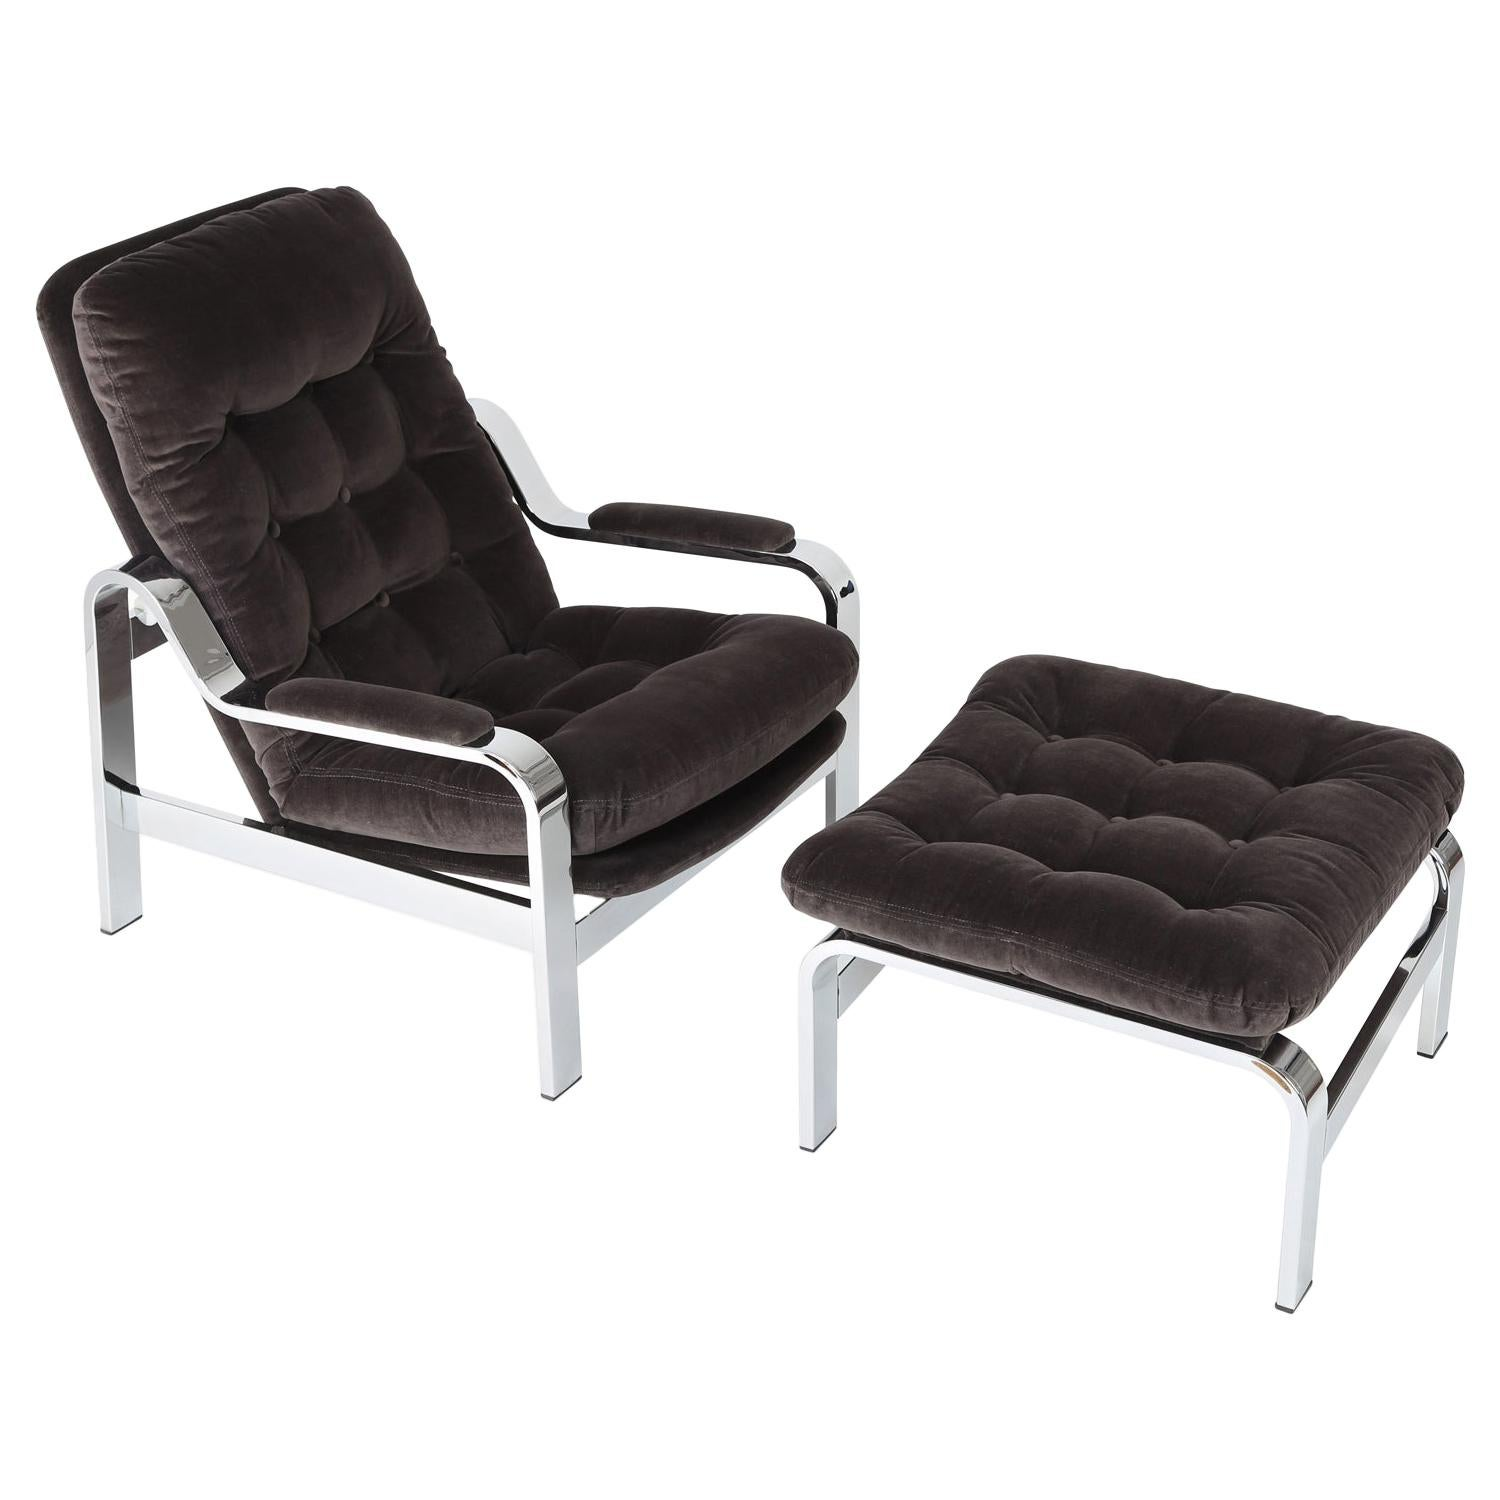 Reclining Chair with Ottoman in Velvet, 1970s